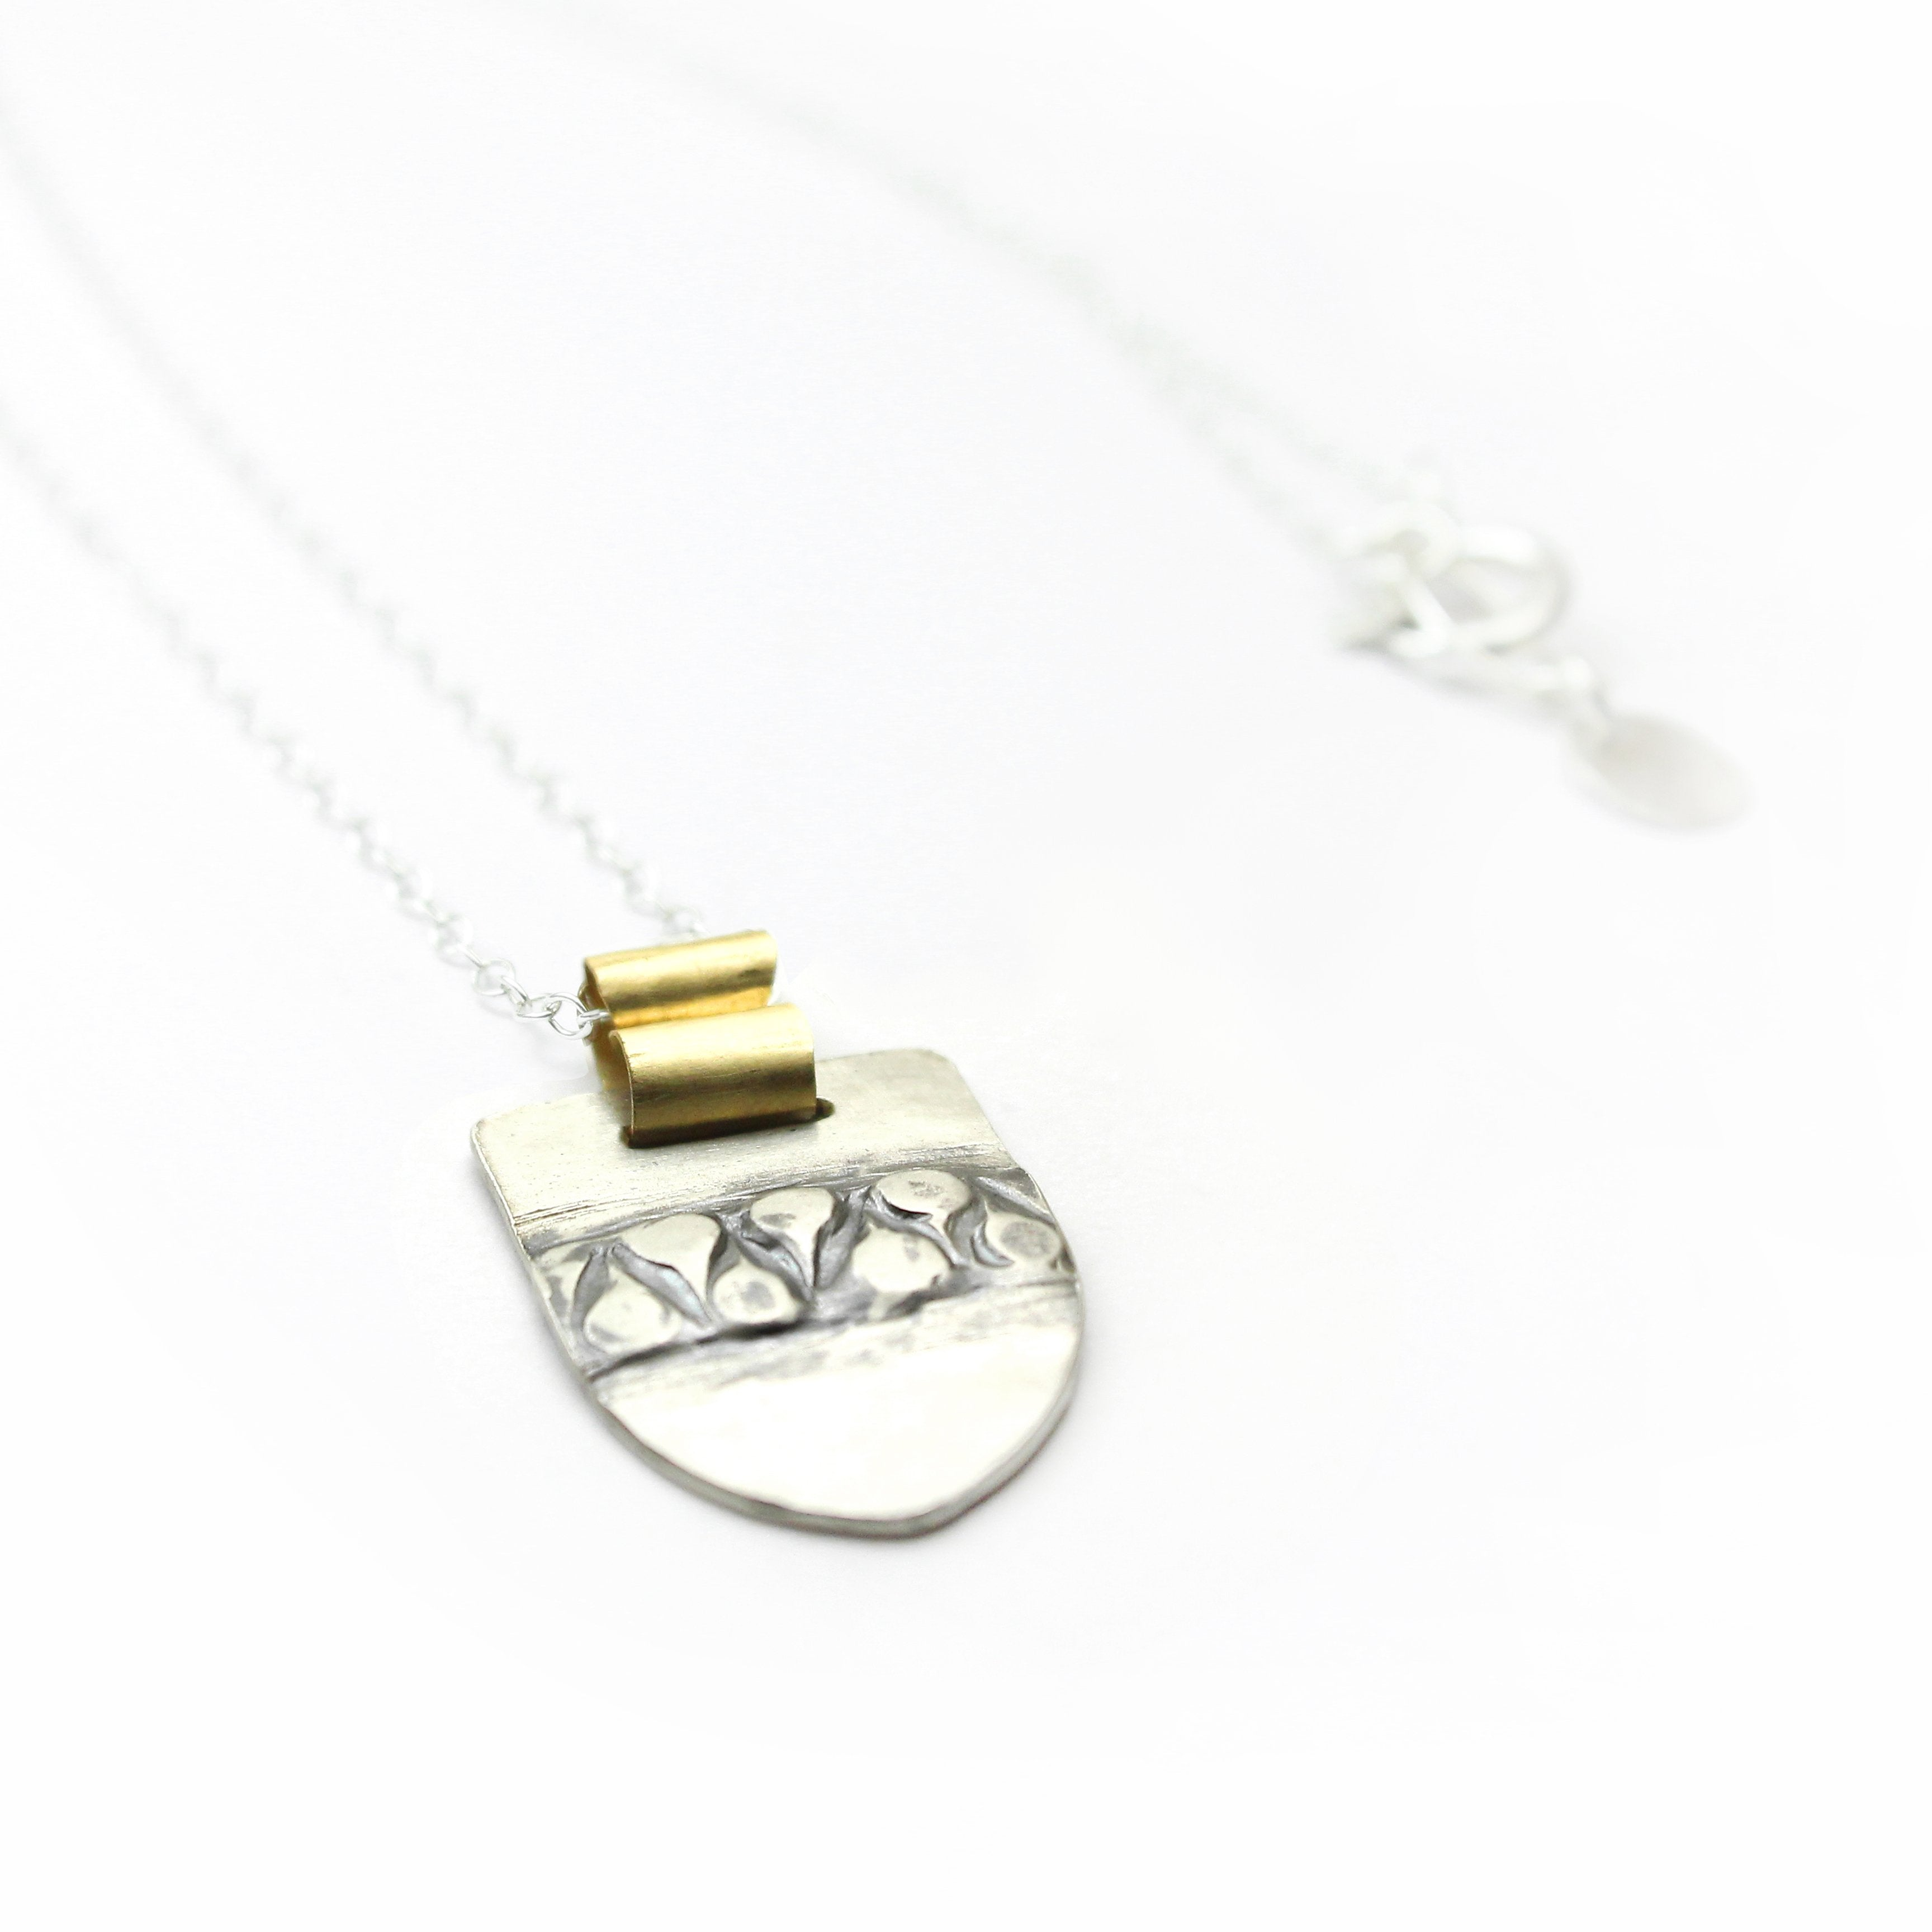 Silver & Gold filled Geometric Pendent Necklace - Shulamit Kanter